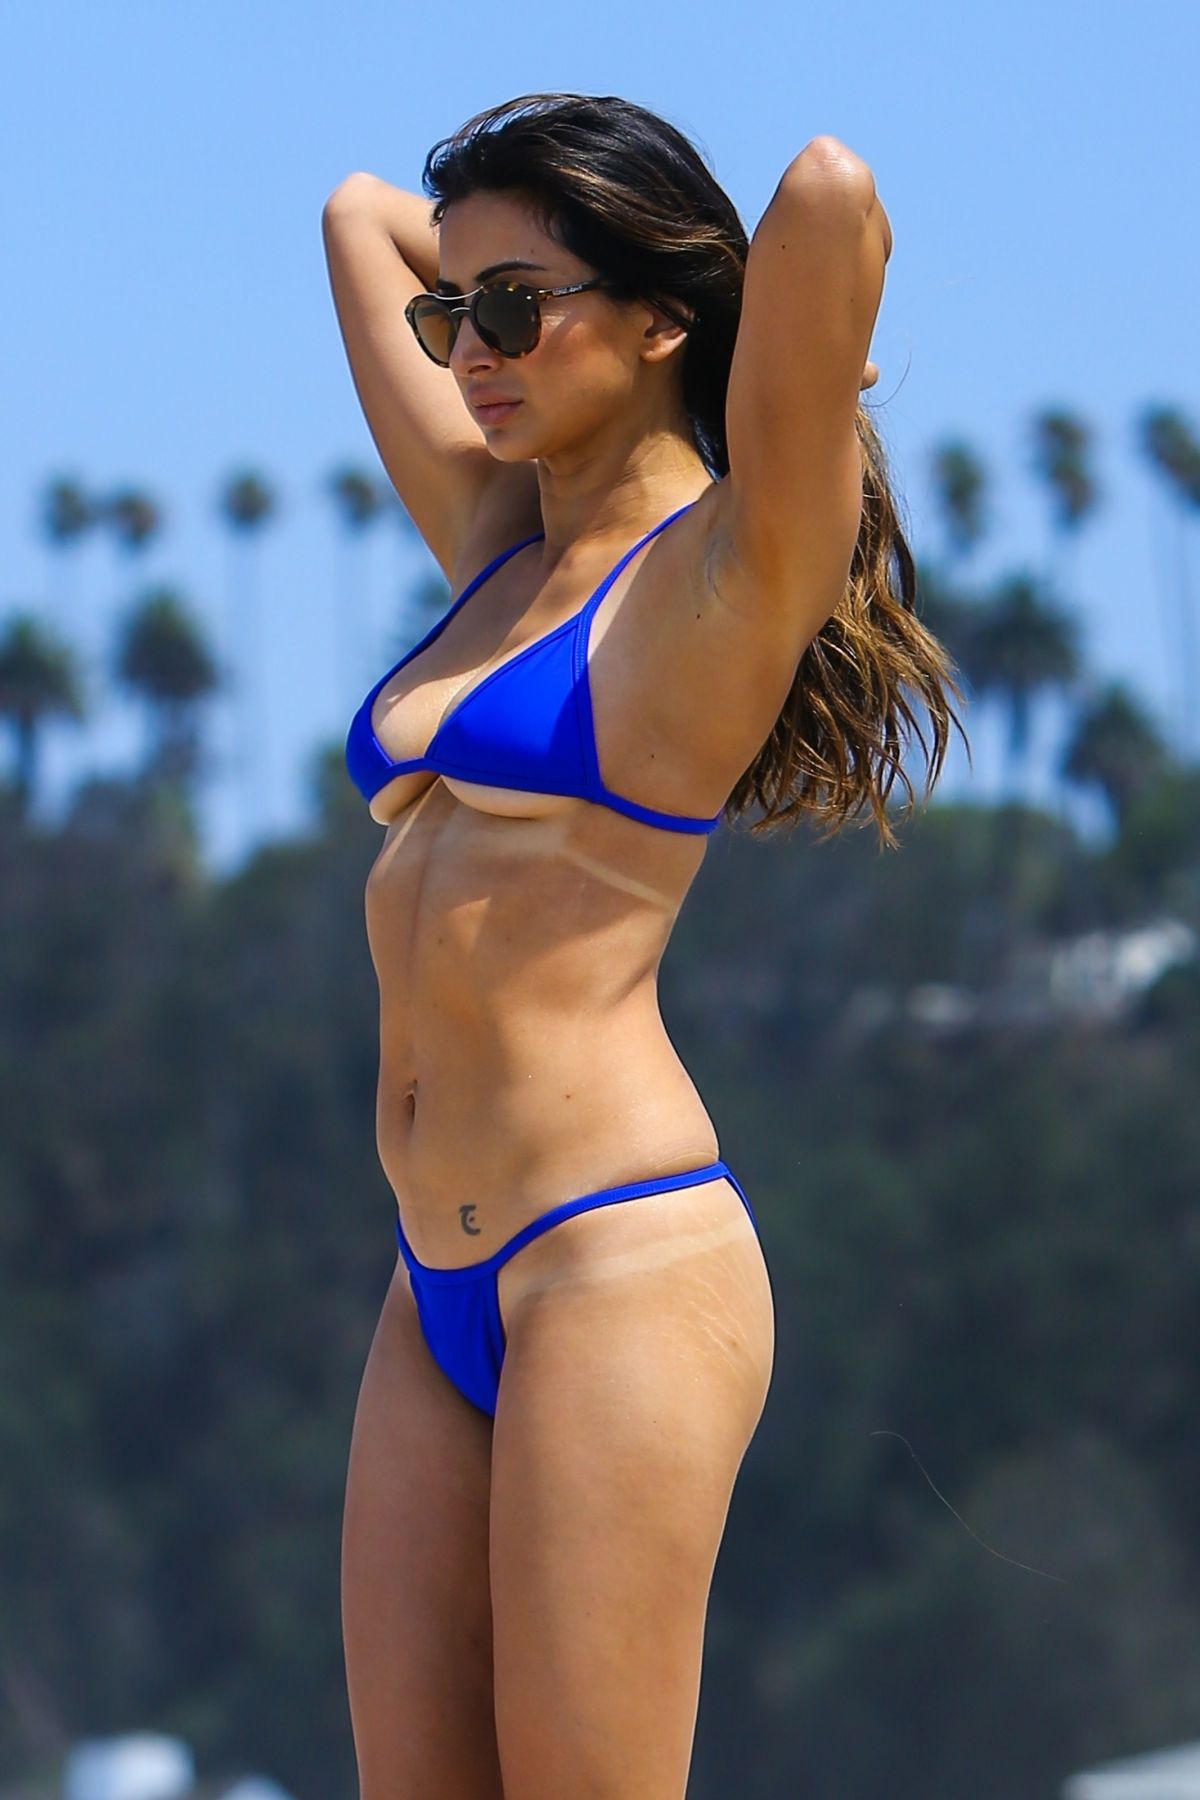 Bikini Noureen DeWulf nudes (21 photo), Tits, Hot, Feet, swimsuit 2017